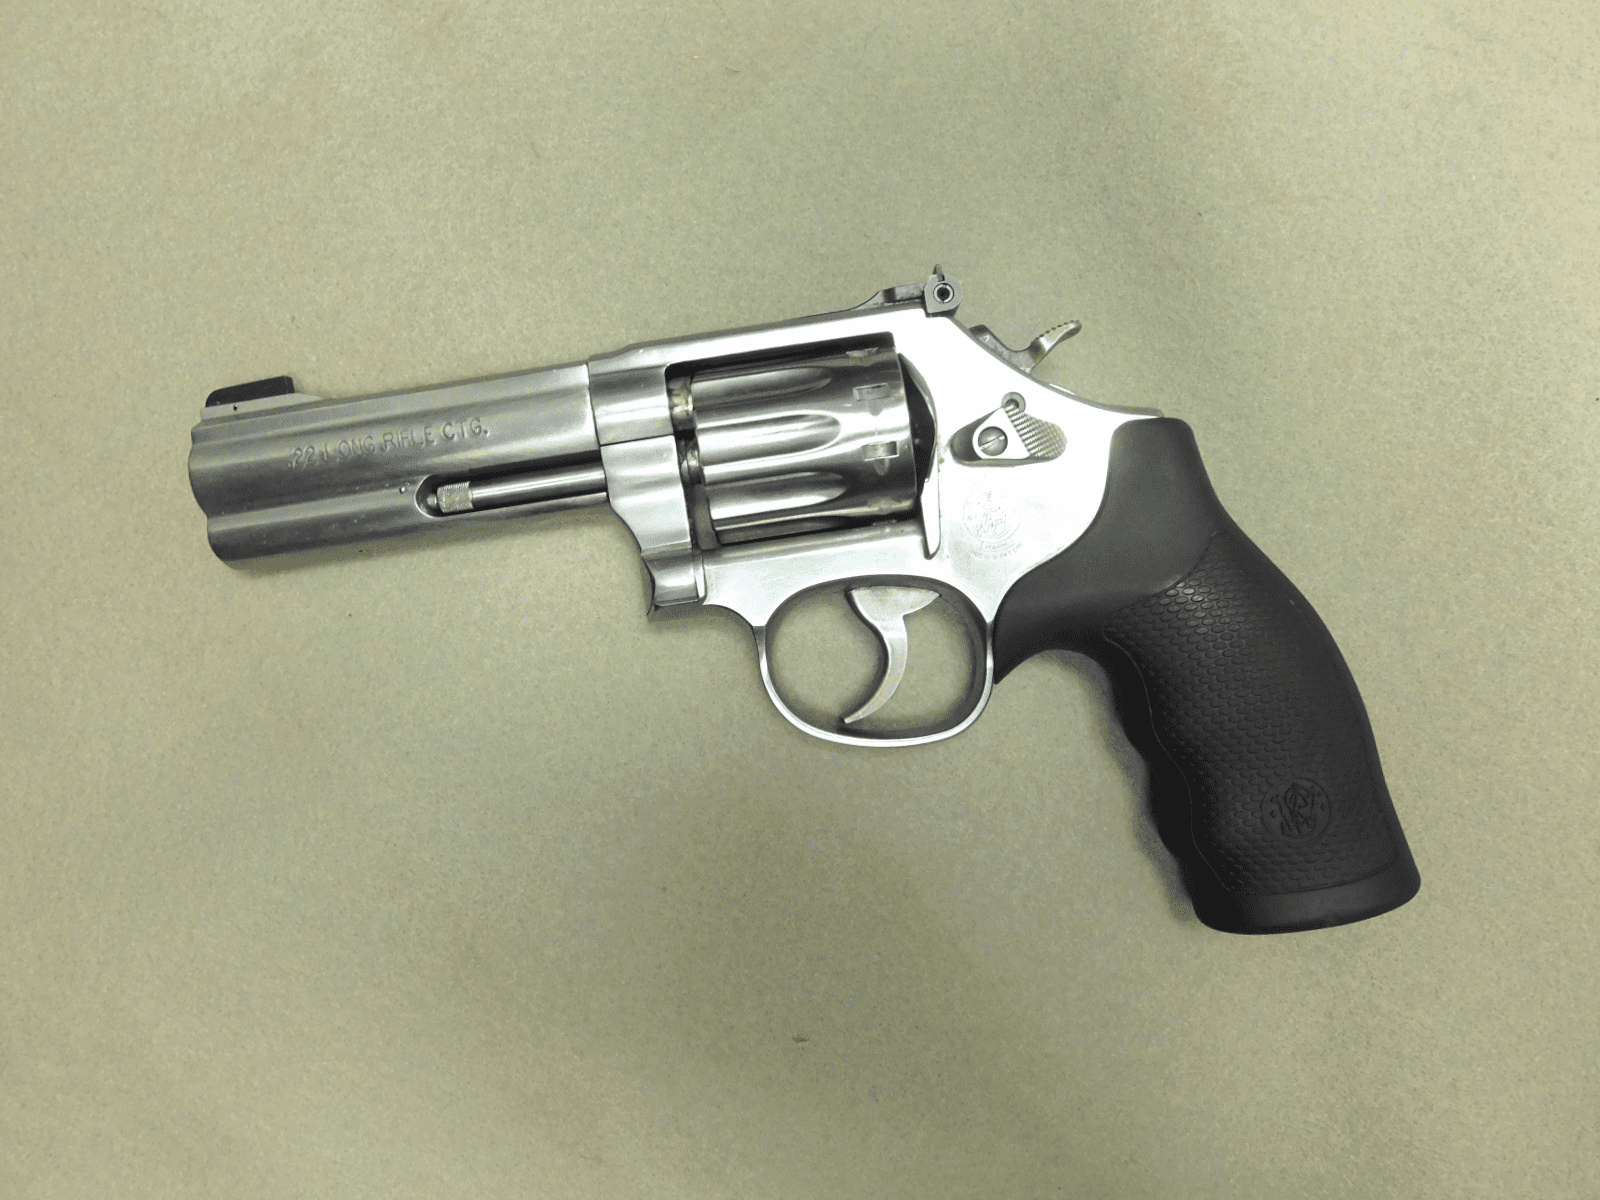 Smith & Wesson 617-6 (.22LR)